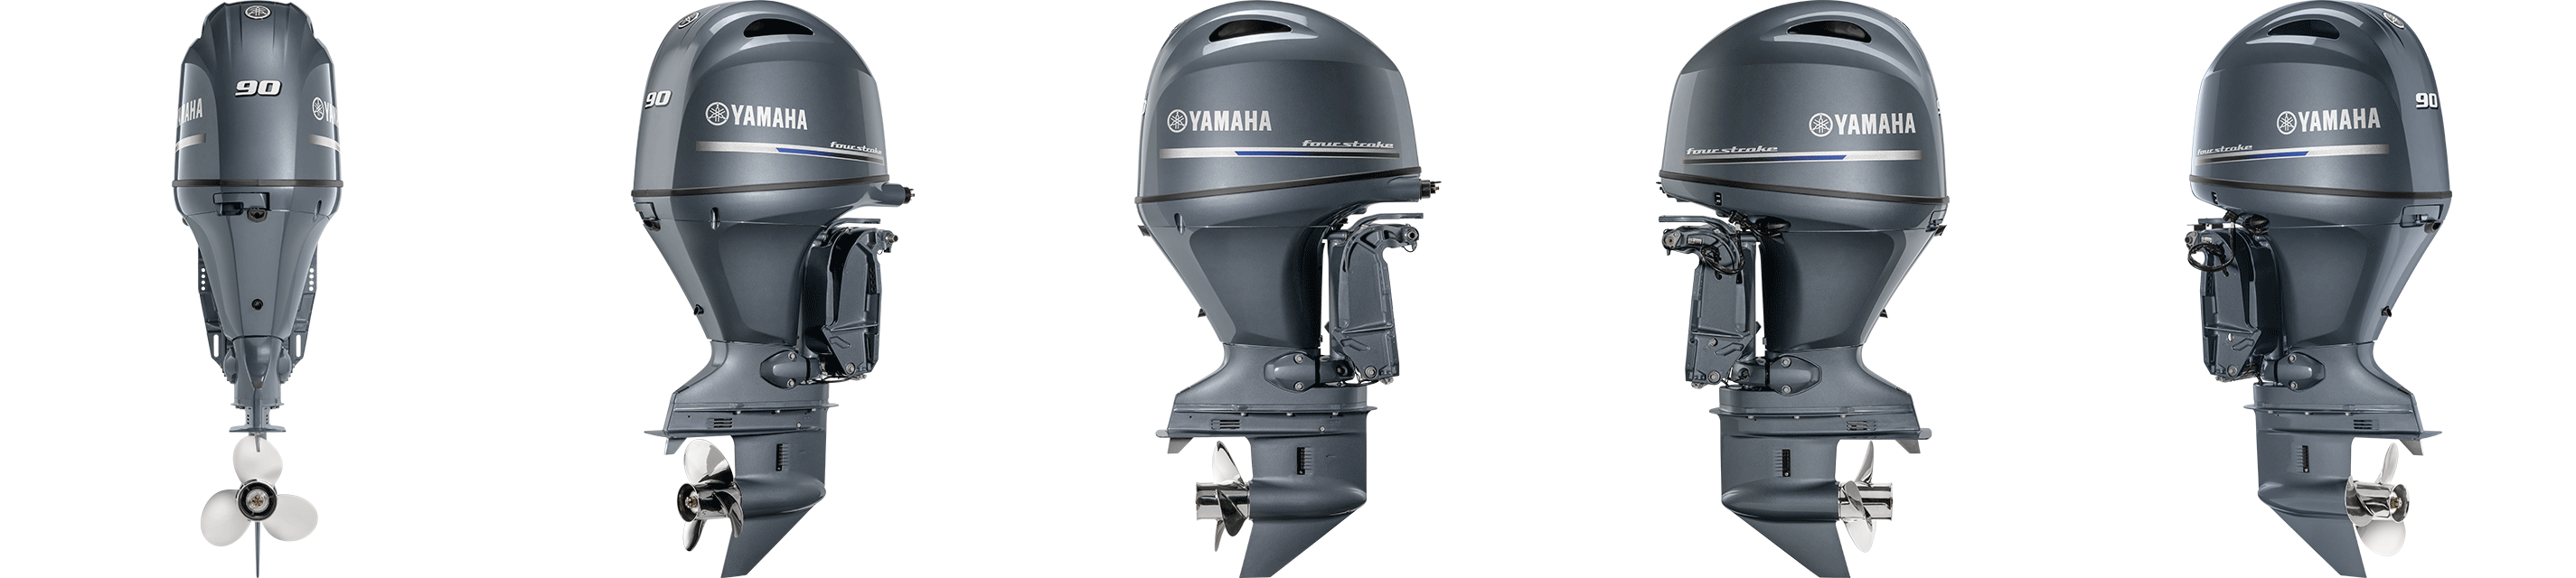 Outboards 115 To 75 Hp 18l I 4 Yamaha 2000 50 Stroke Wiring Diagram Propeller Except Models 25 And Under Which Include A Standard All Jet Model Weights The Pump Assembly Weight Estimated